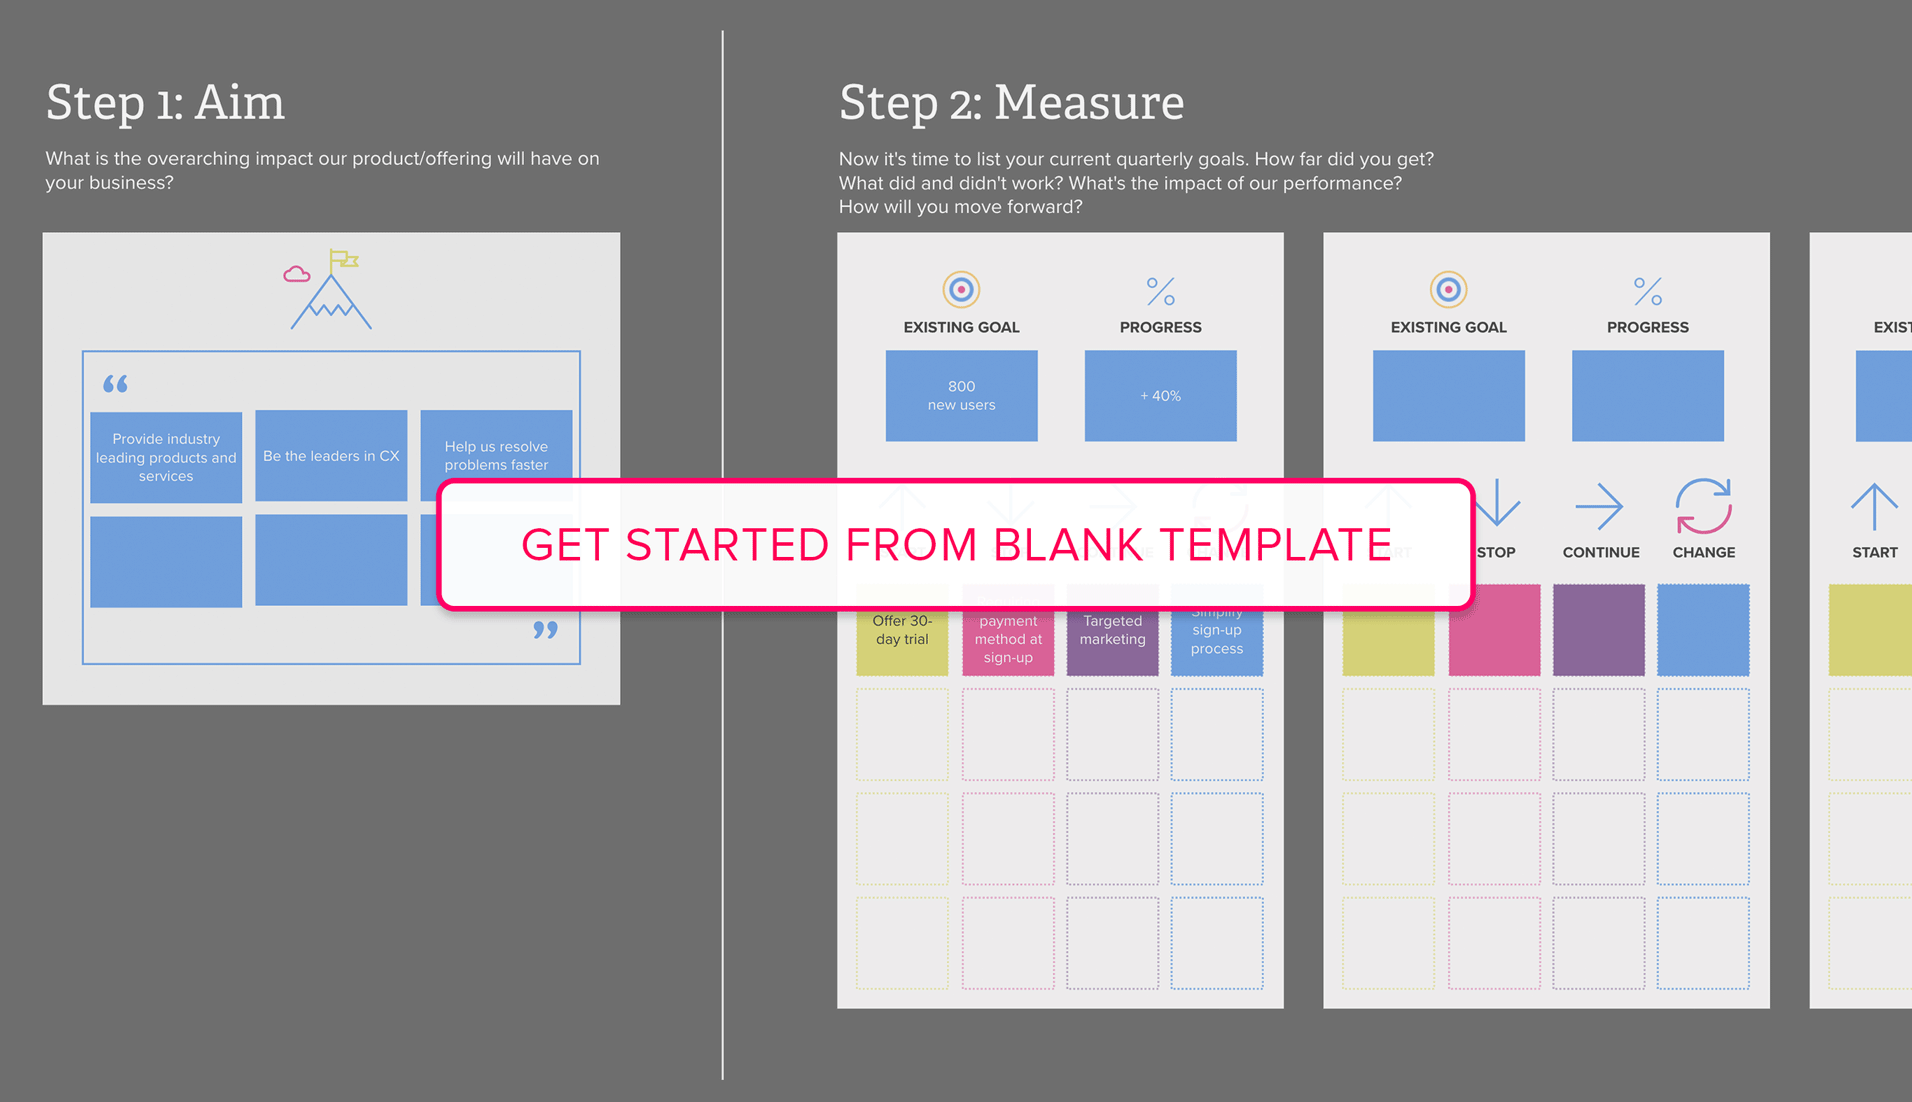 Get started from blank template